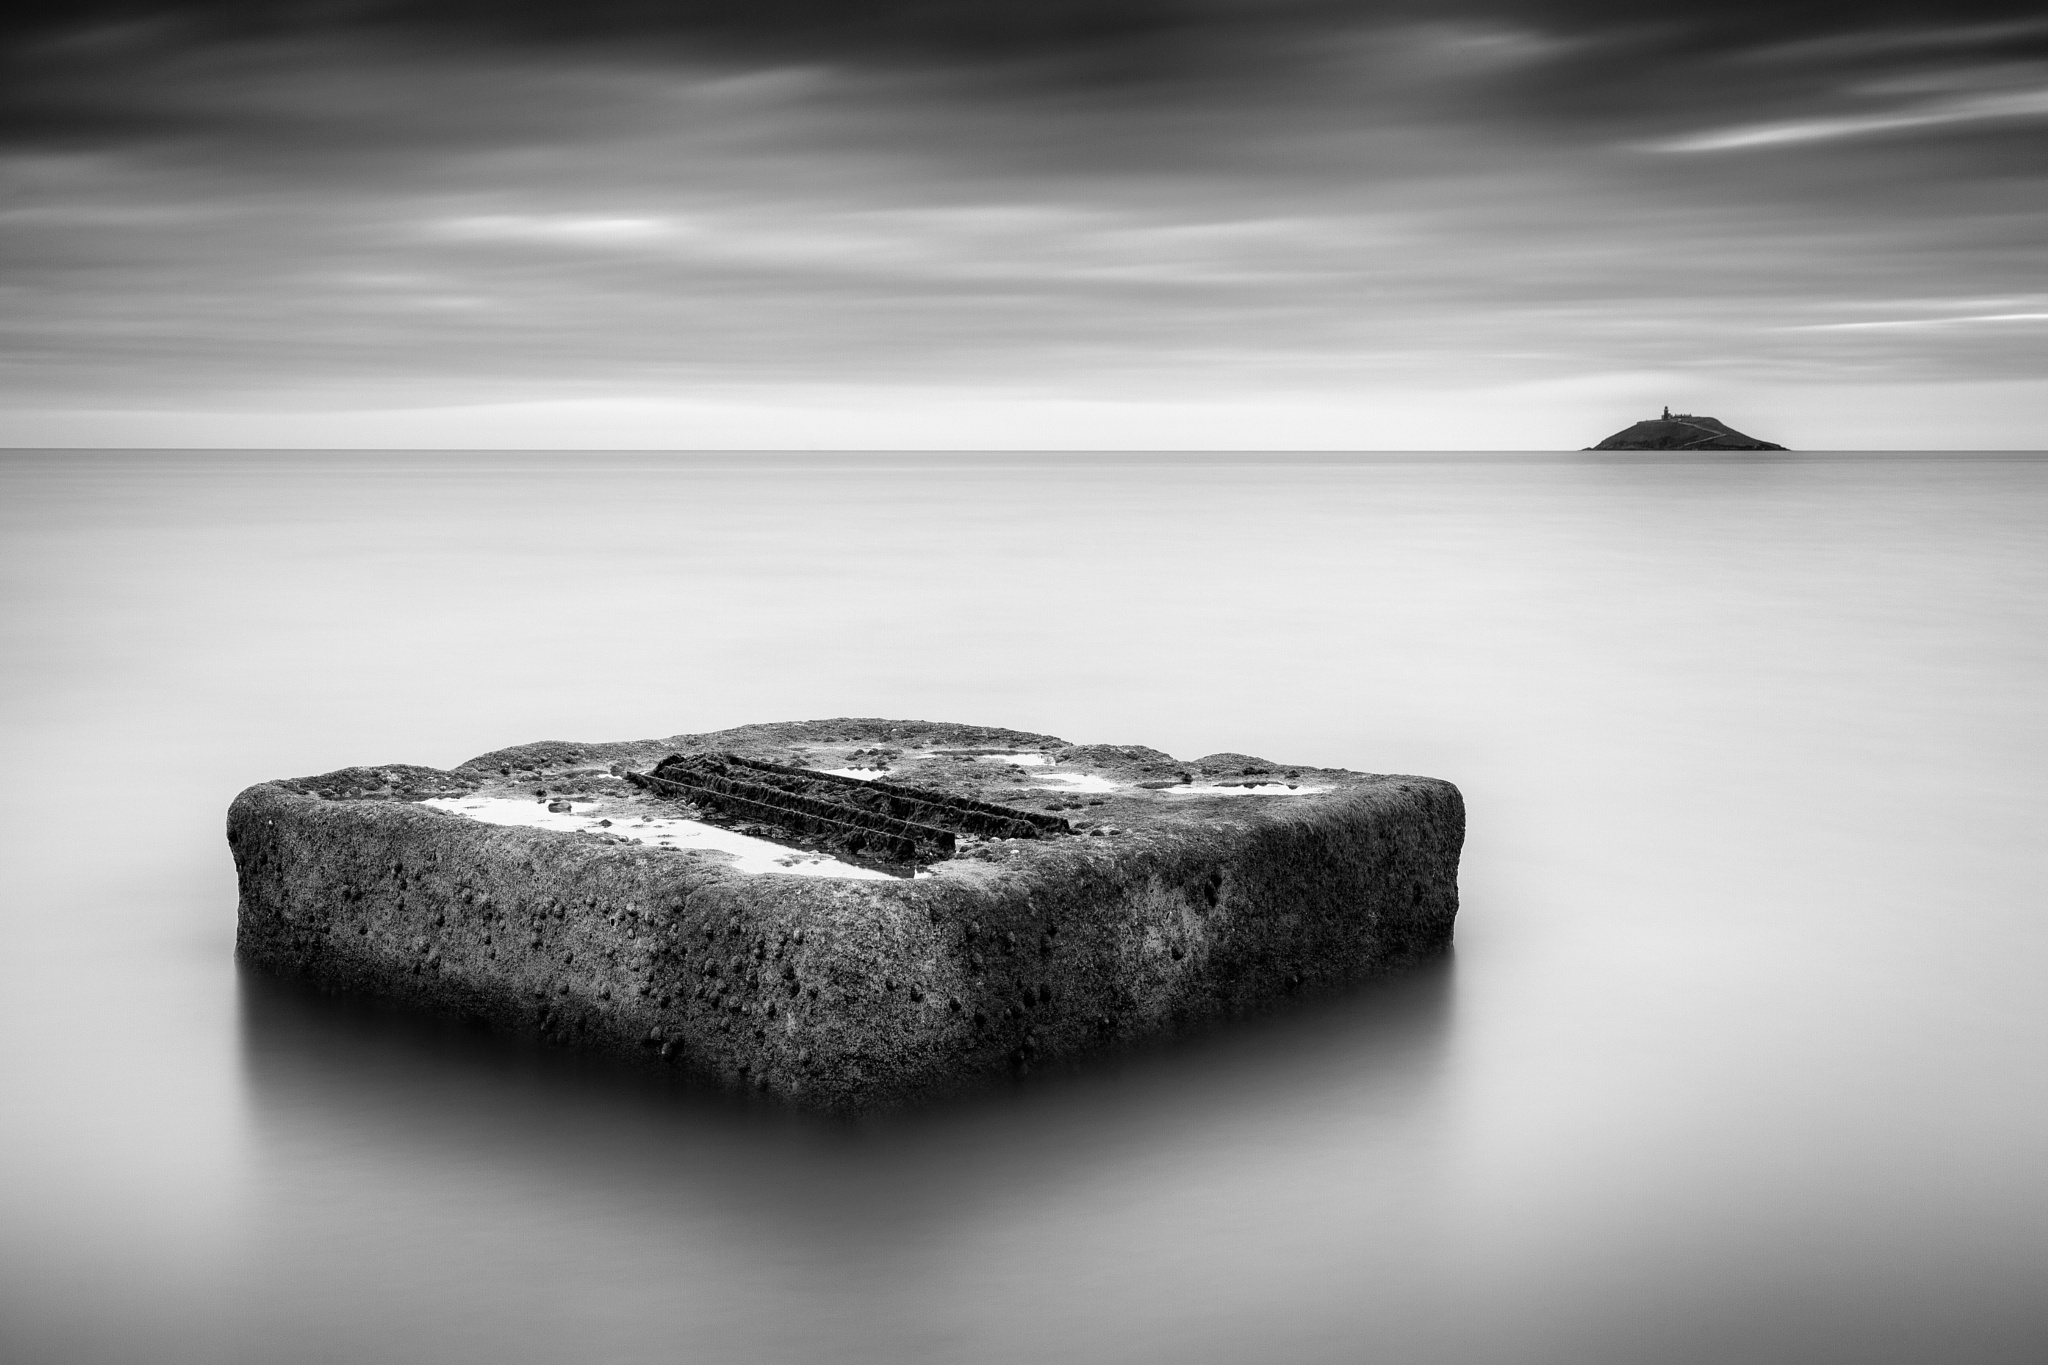 Serenity by GrahamDalyPhotography